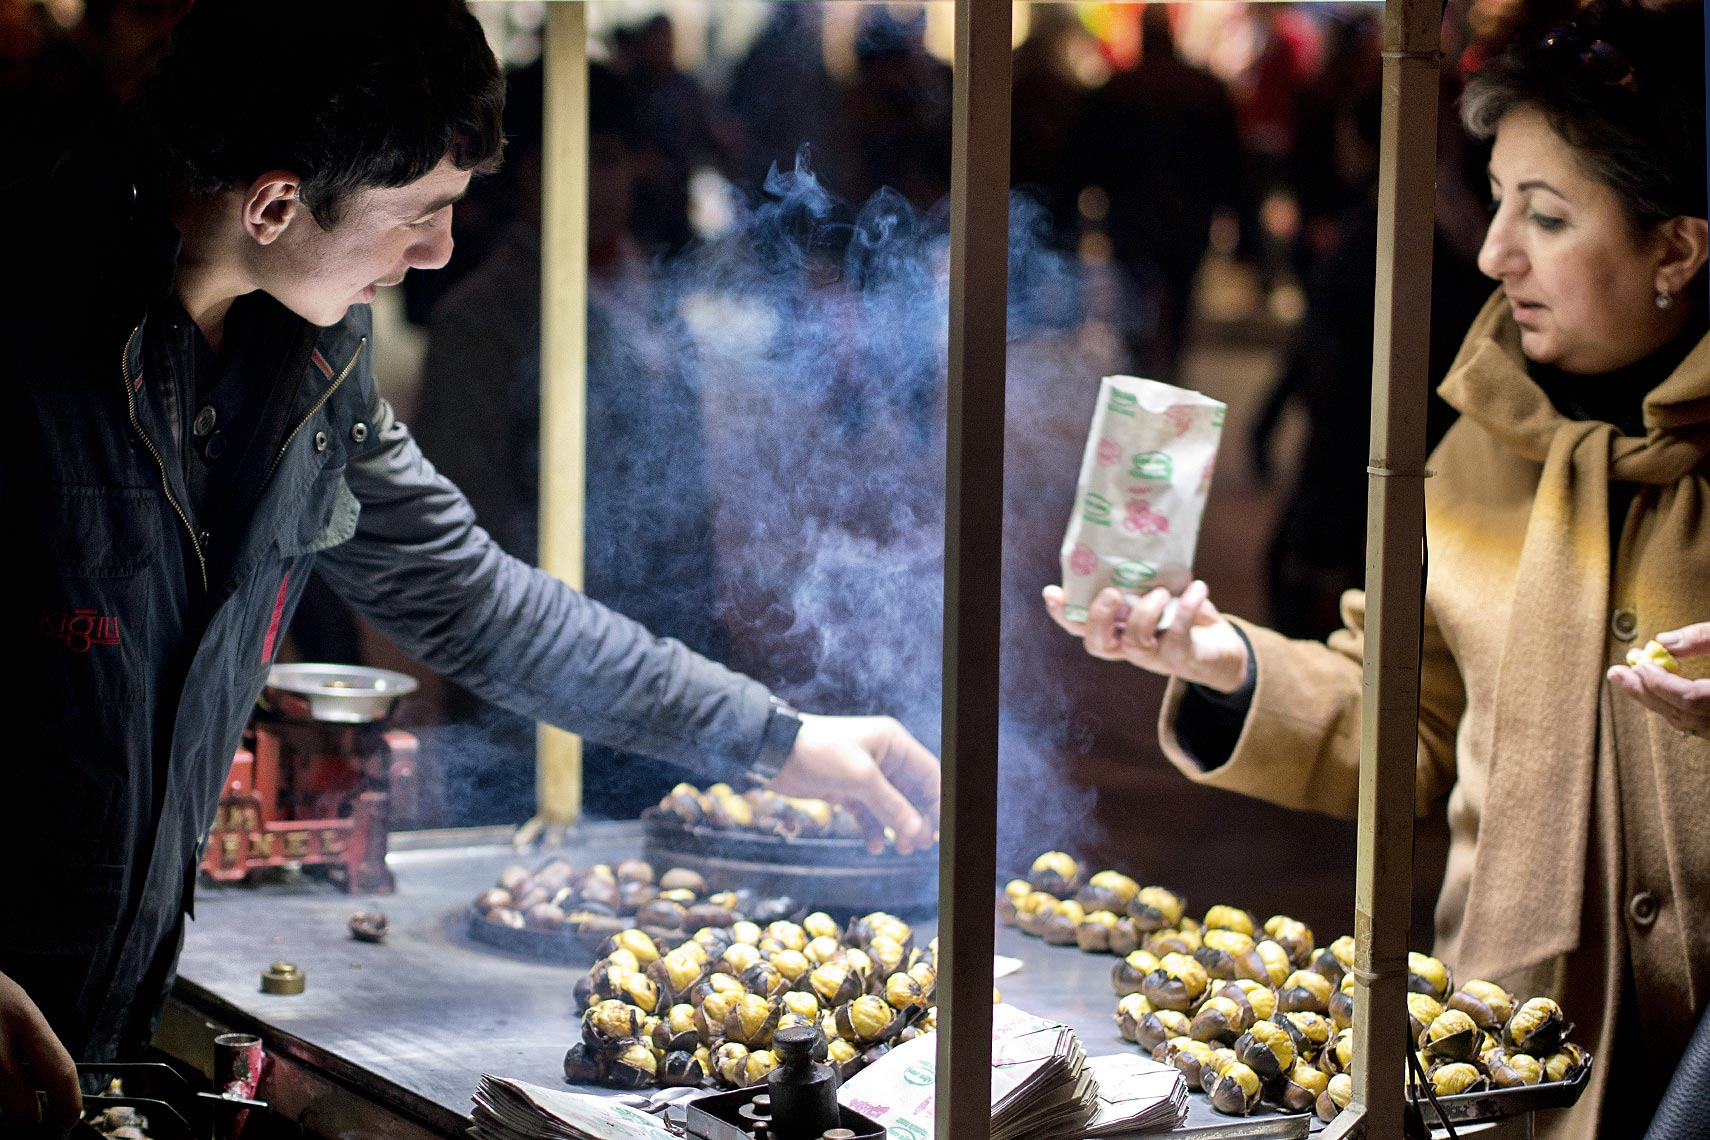 chestnut_seller